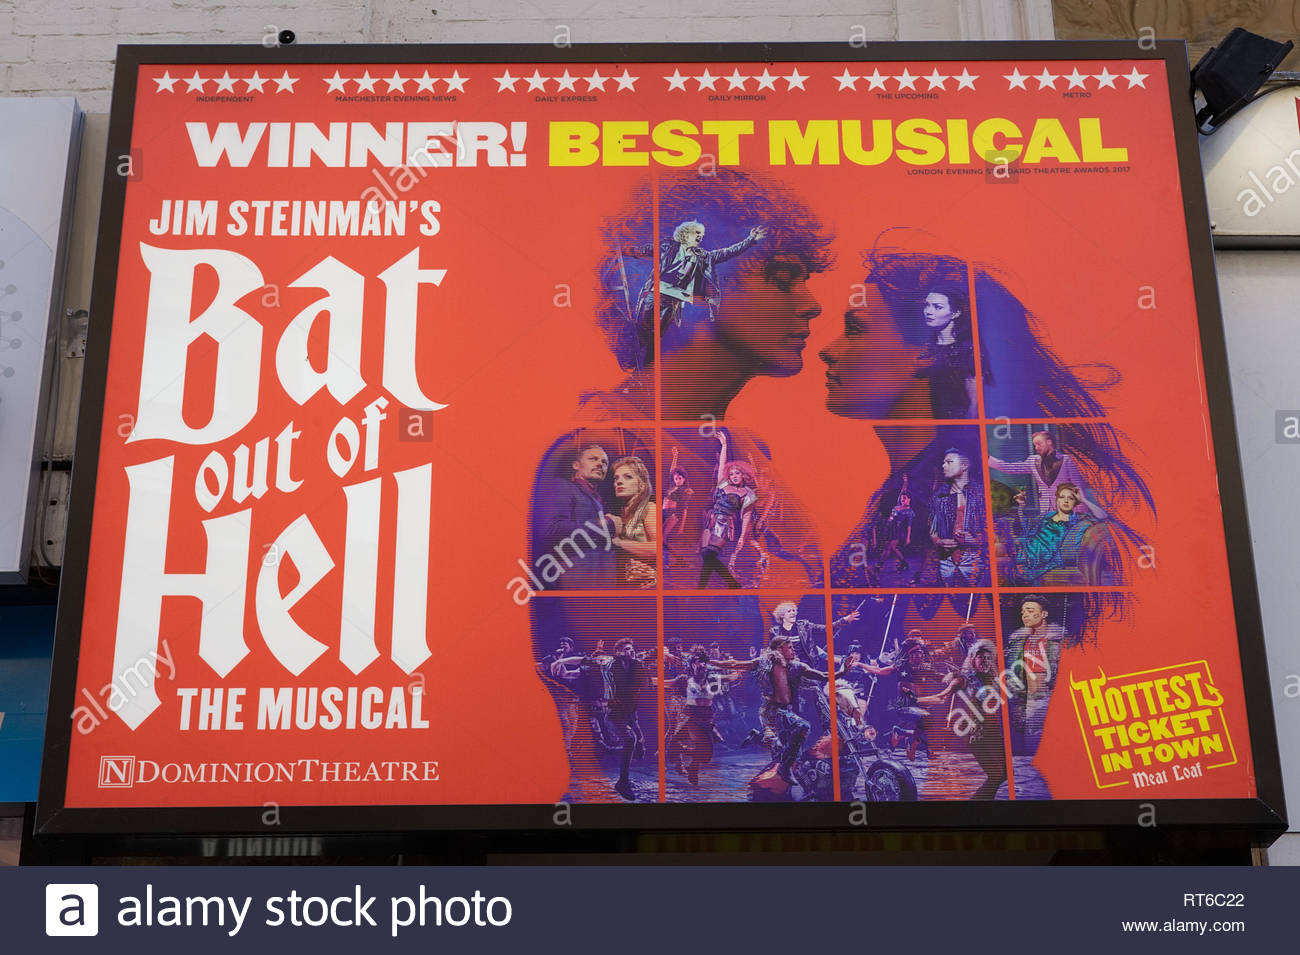 Bat out of Hell promotional poster - Stock Image